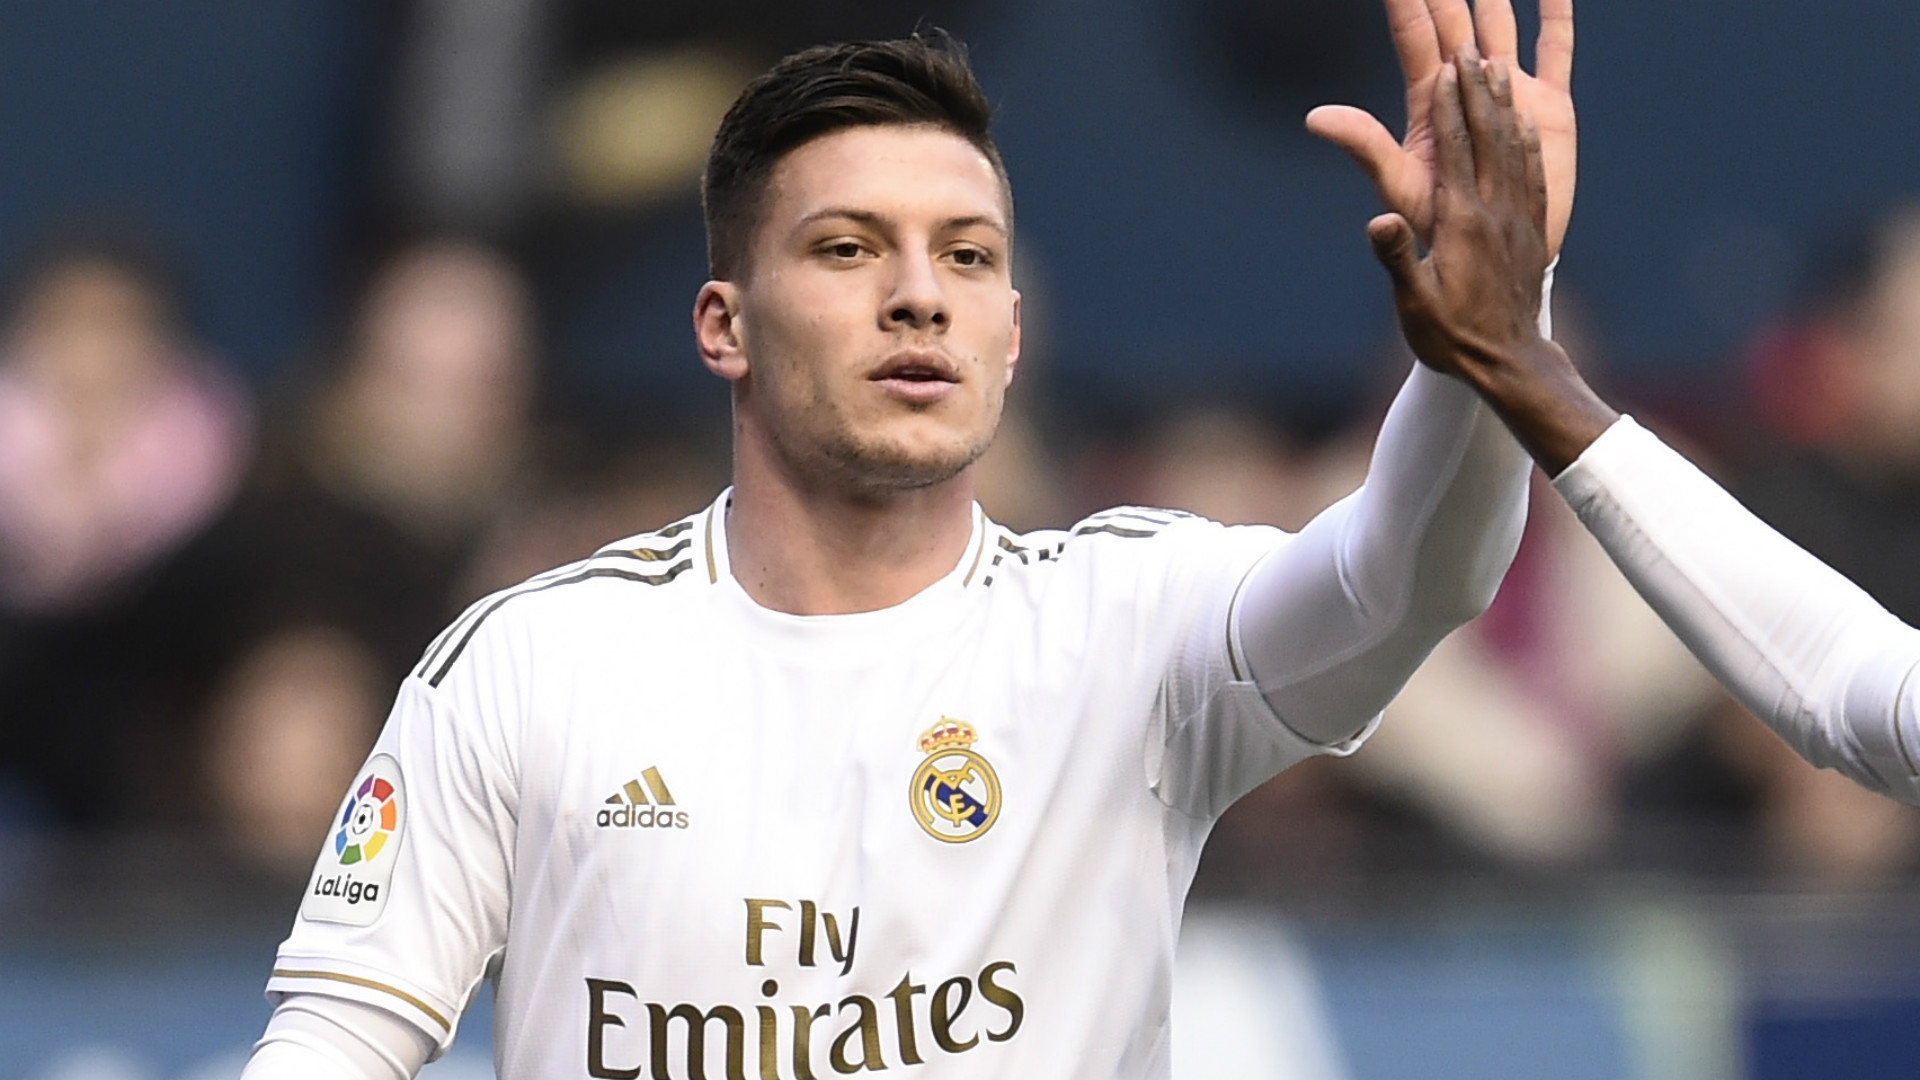 It's my fault' - Jovic ready to accept consequences of breaching self  isolation restrictions due to coronavirus